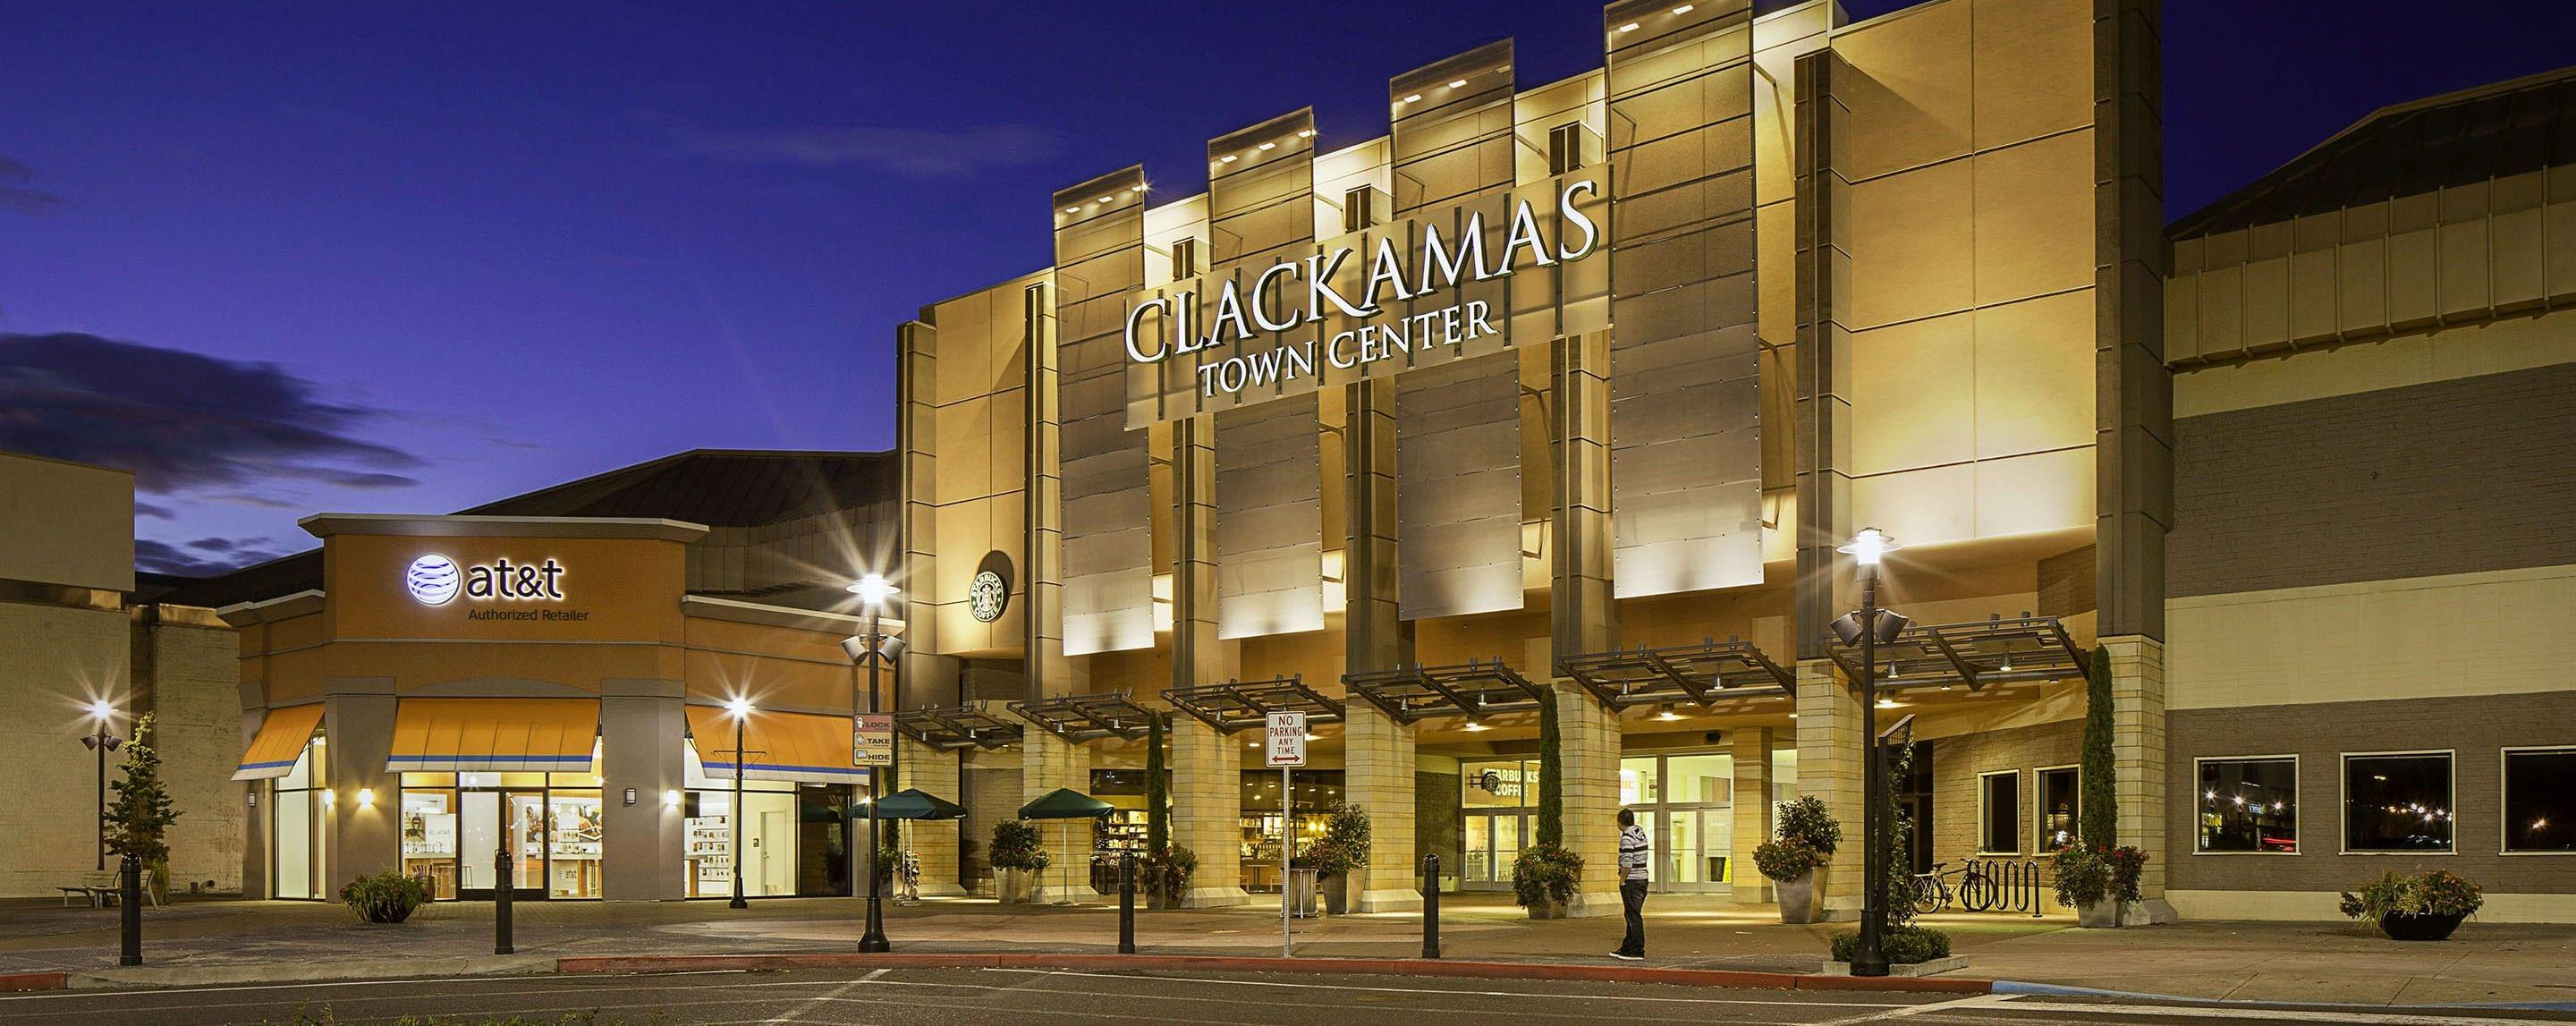 At night, the Clackamas Town Center sign is brightly shining on the building's main entrance with potted plants as décor.